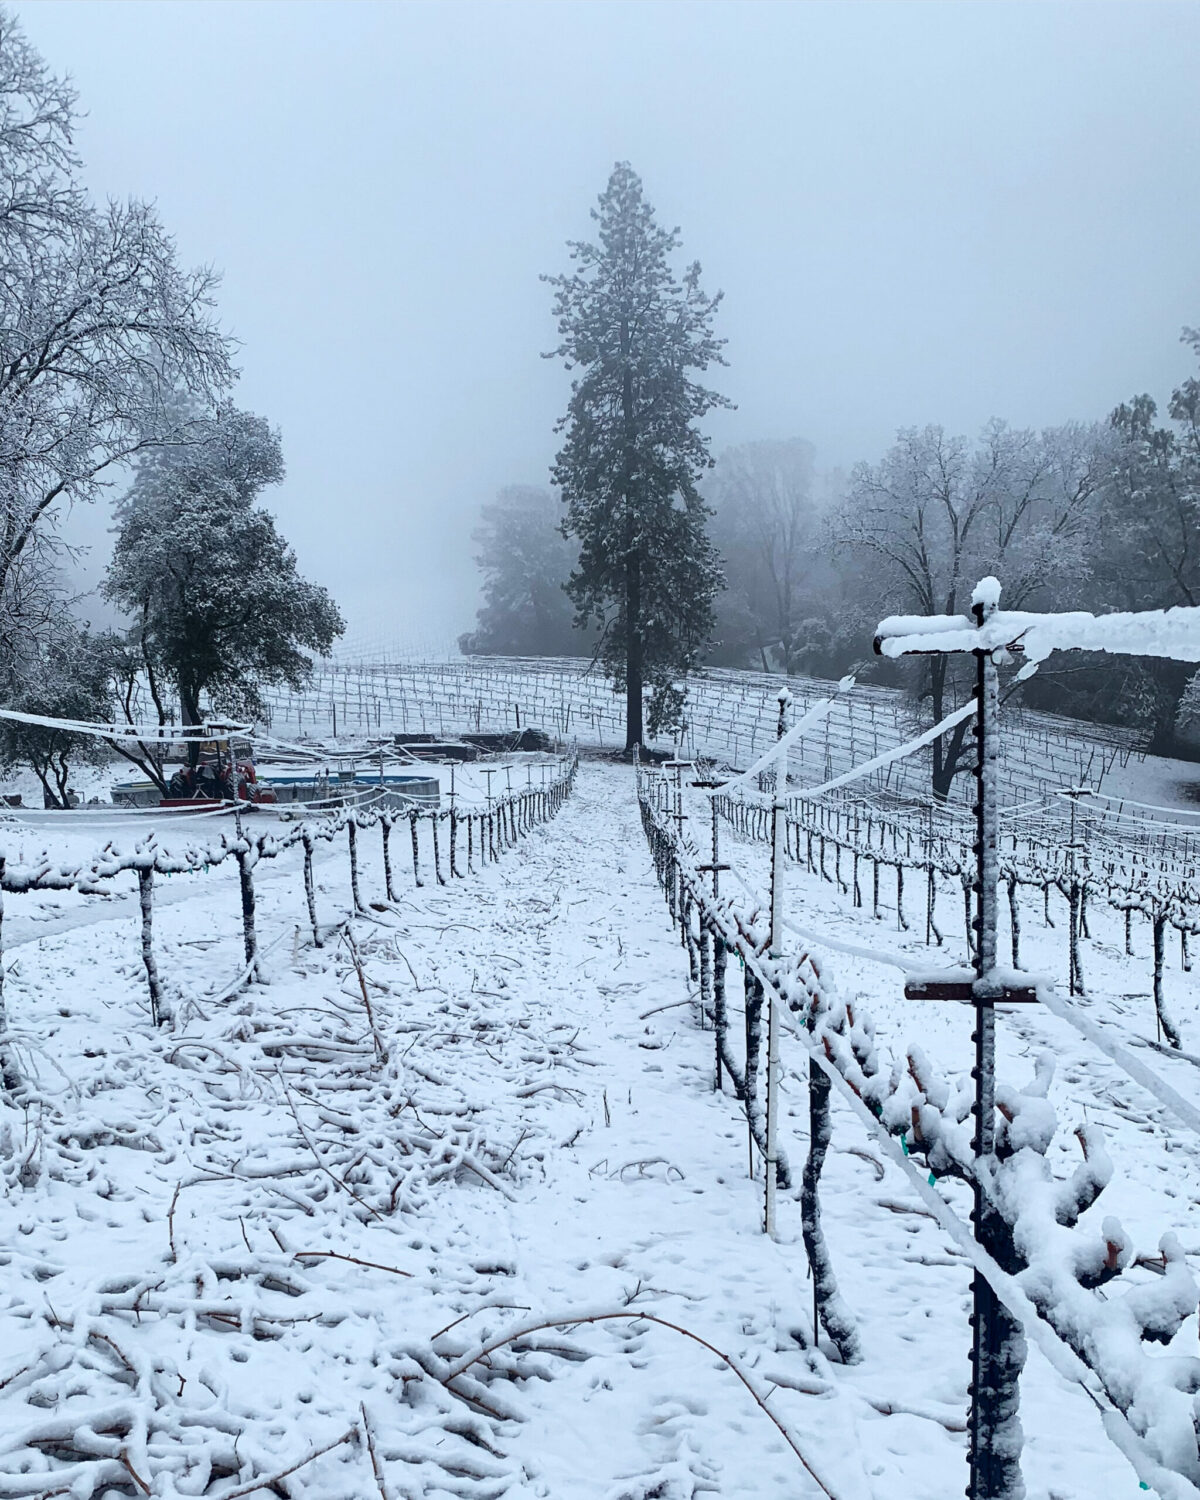 grape vines overed in snow in winter